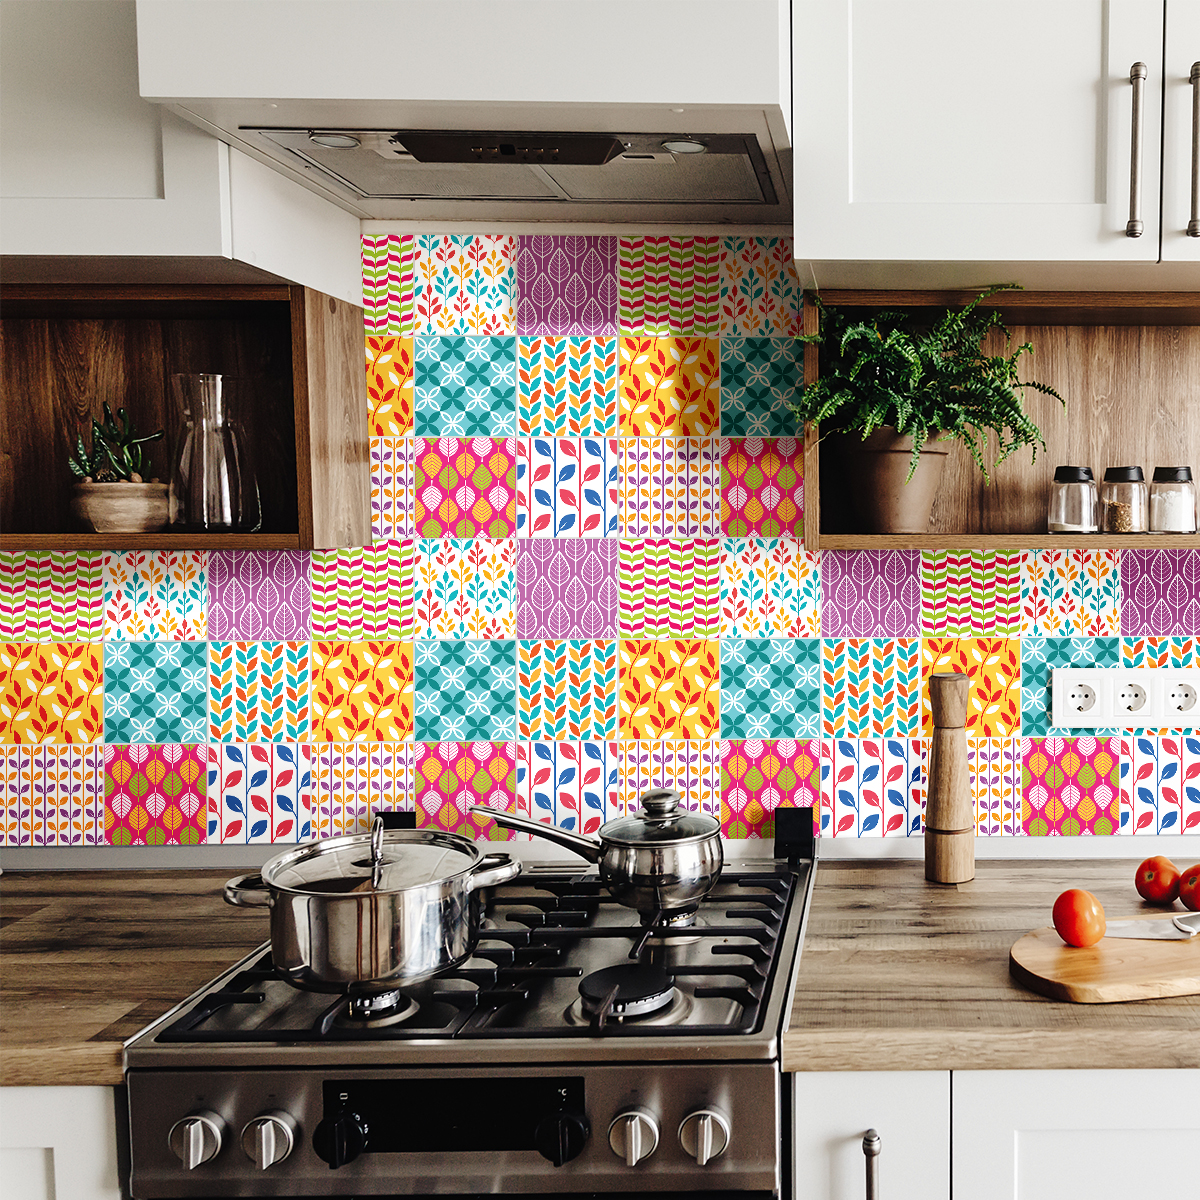 Stickers Carrelage Cuisine: 9 Stickers Carrelages Azulejos Rogriguez